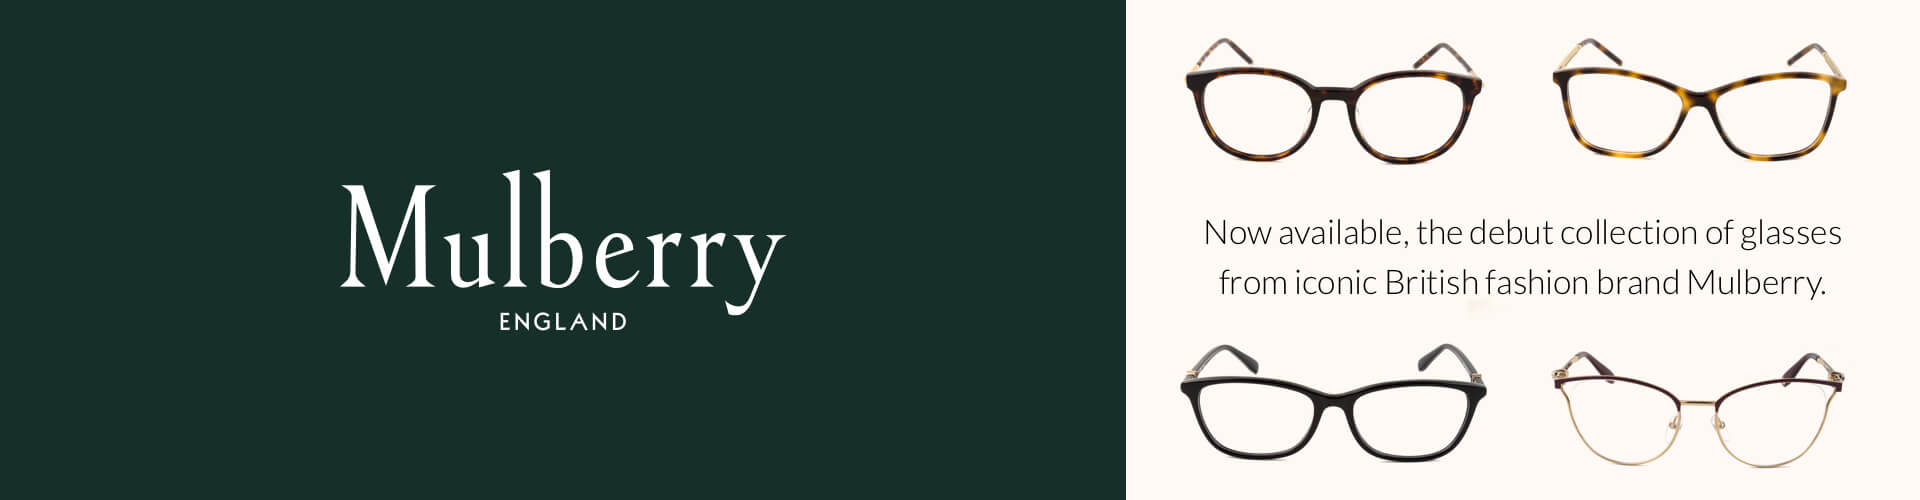 Mulberry England. Now available, the debut collection of glasses from iconic British fashion brand Mulberry.